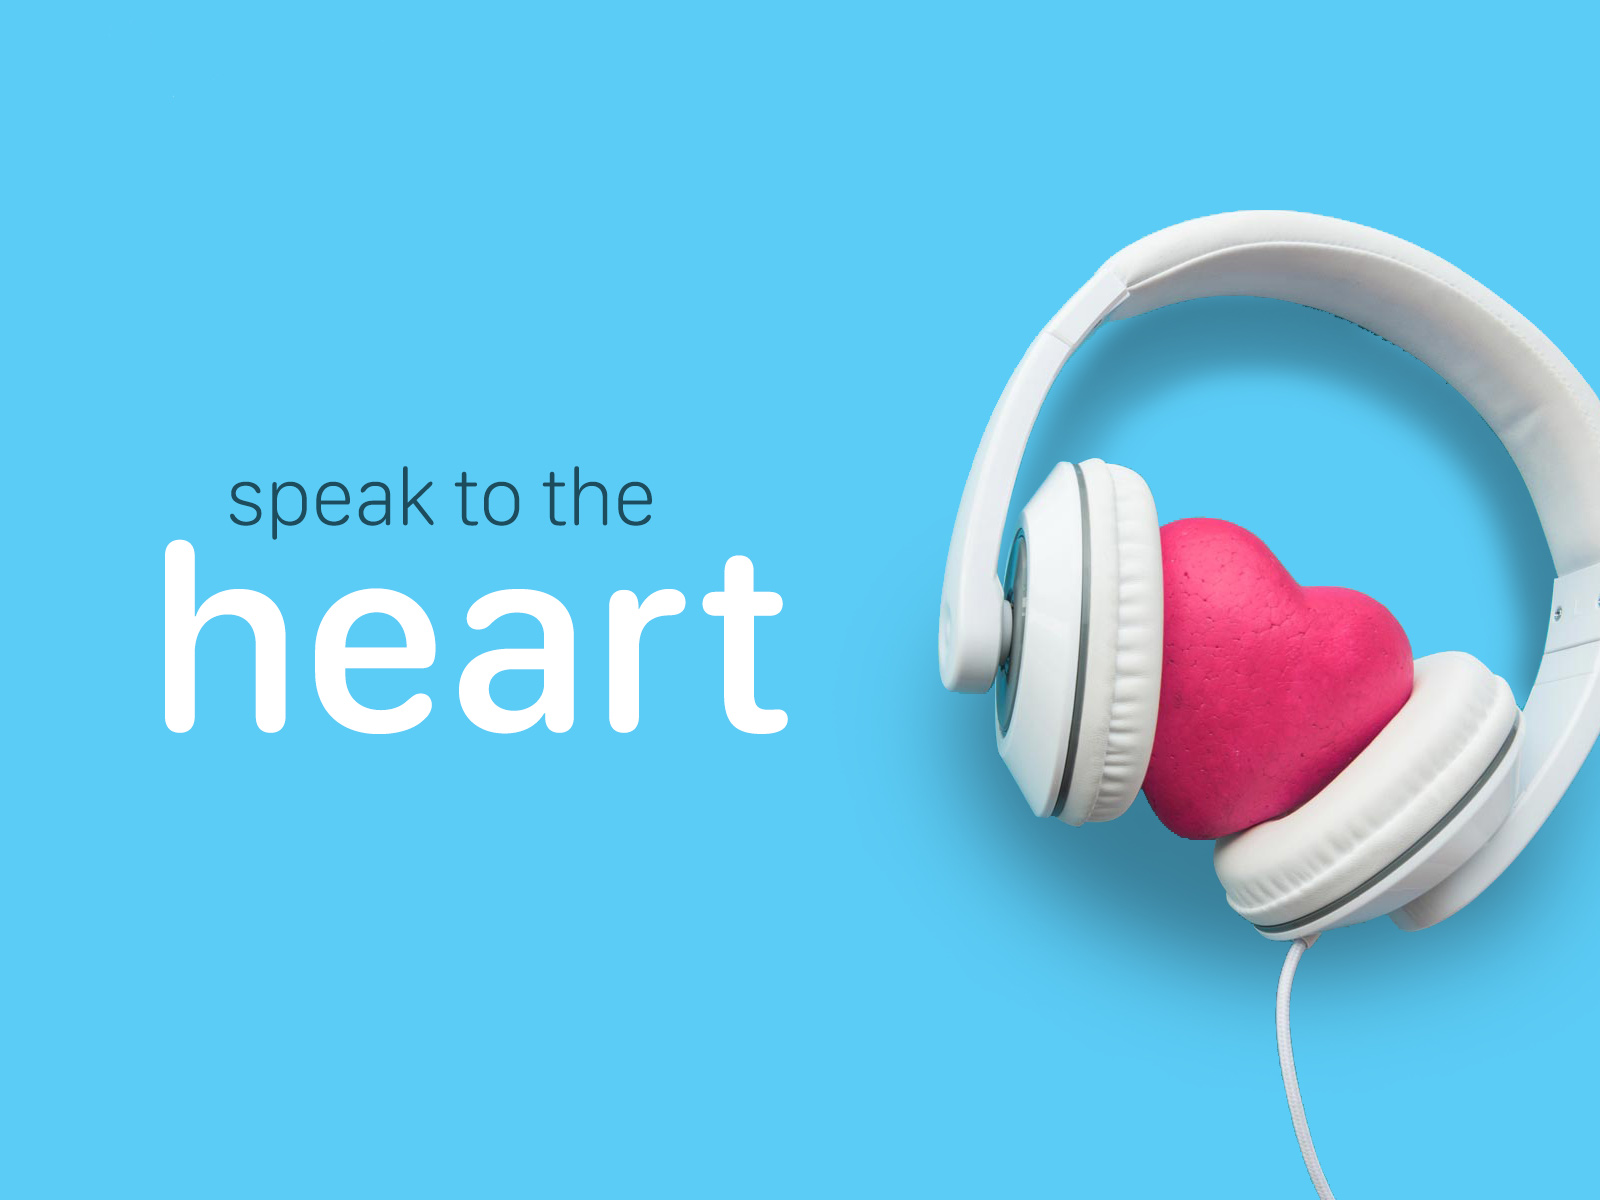 Speak to the heart